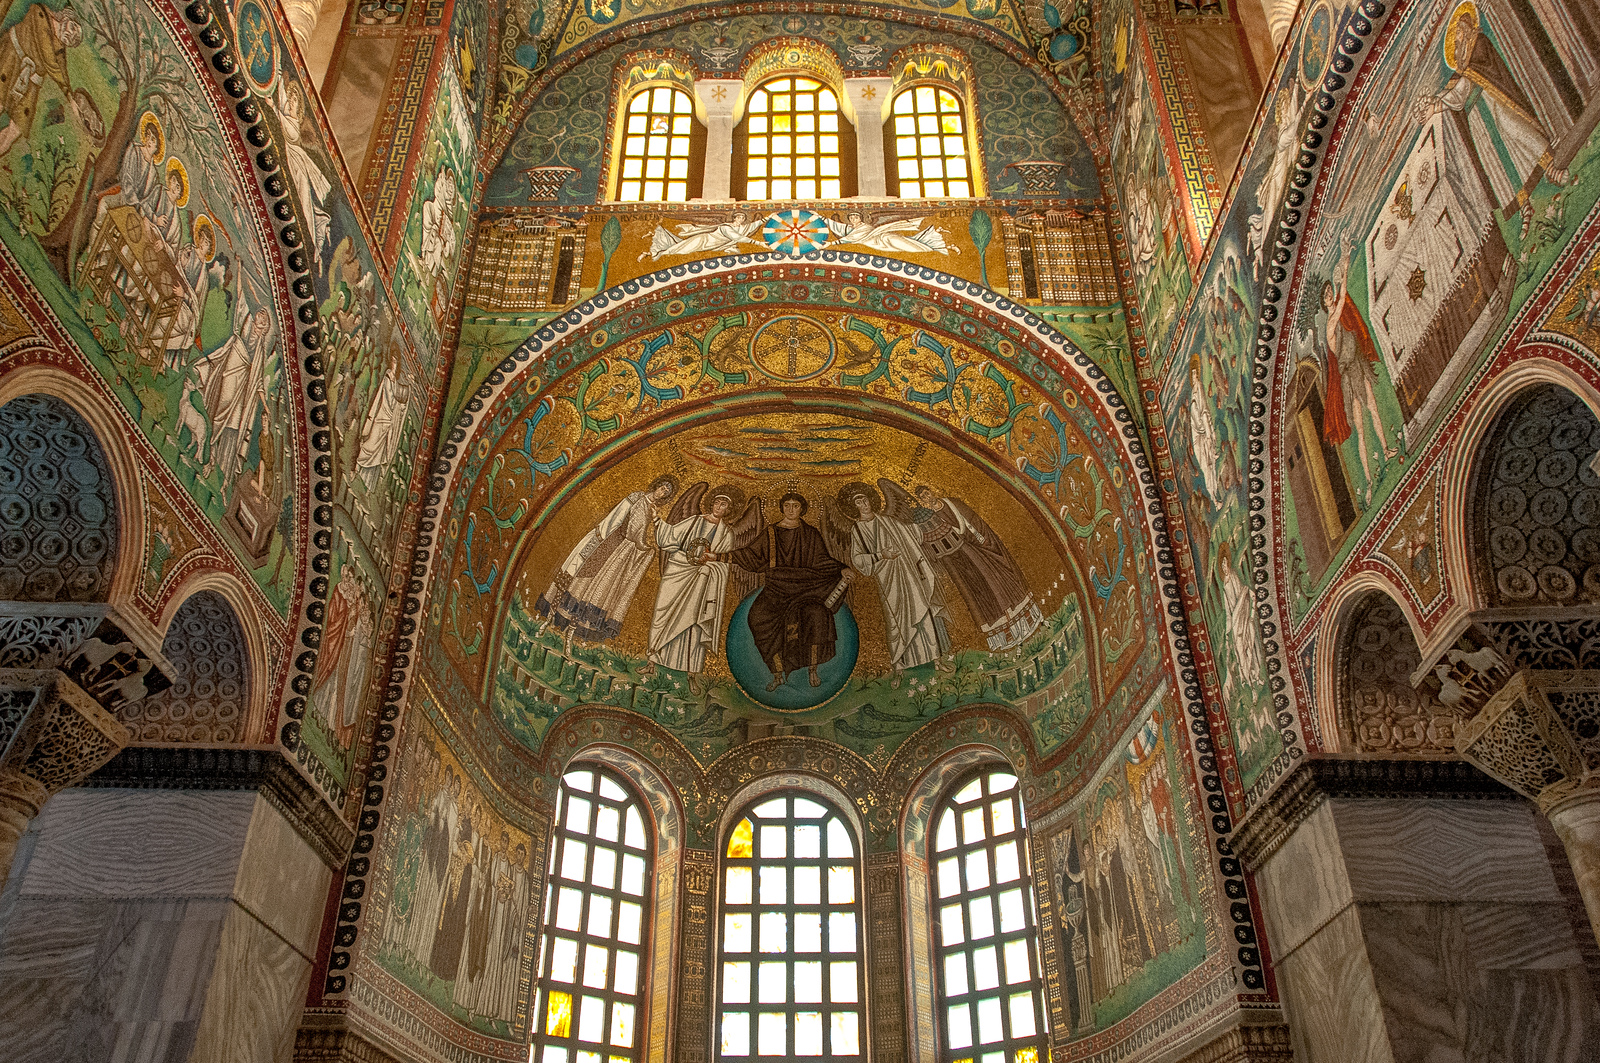 UNESCO World Heritage Site #242: Early Christian Monuments of Ravenna